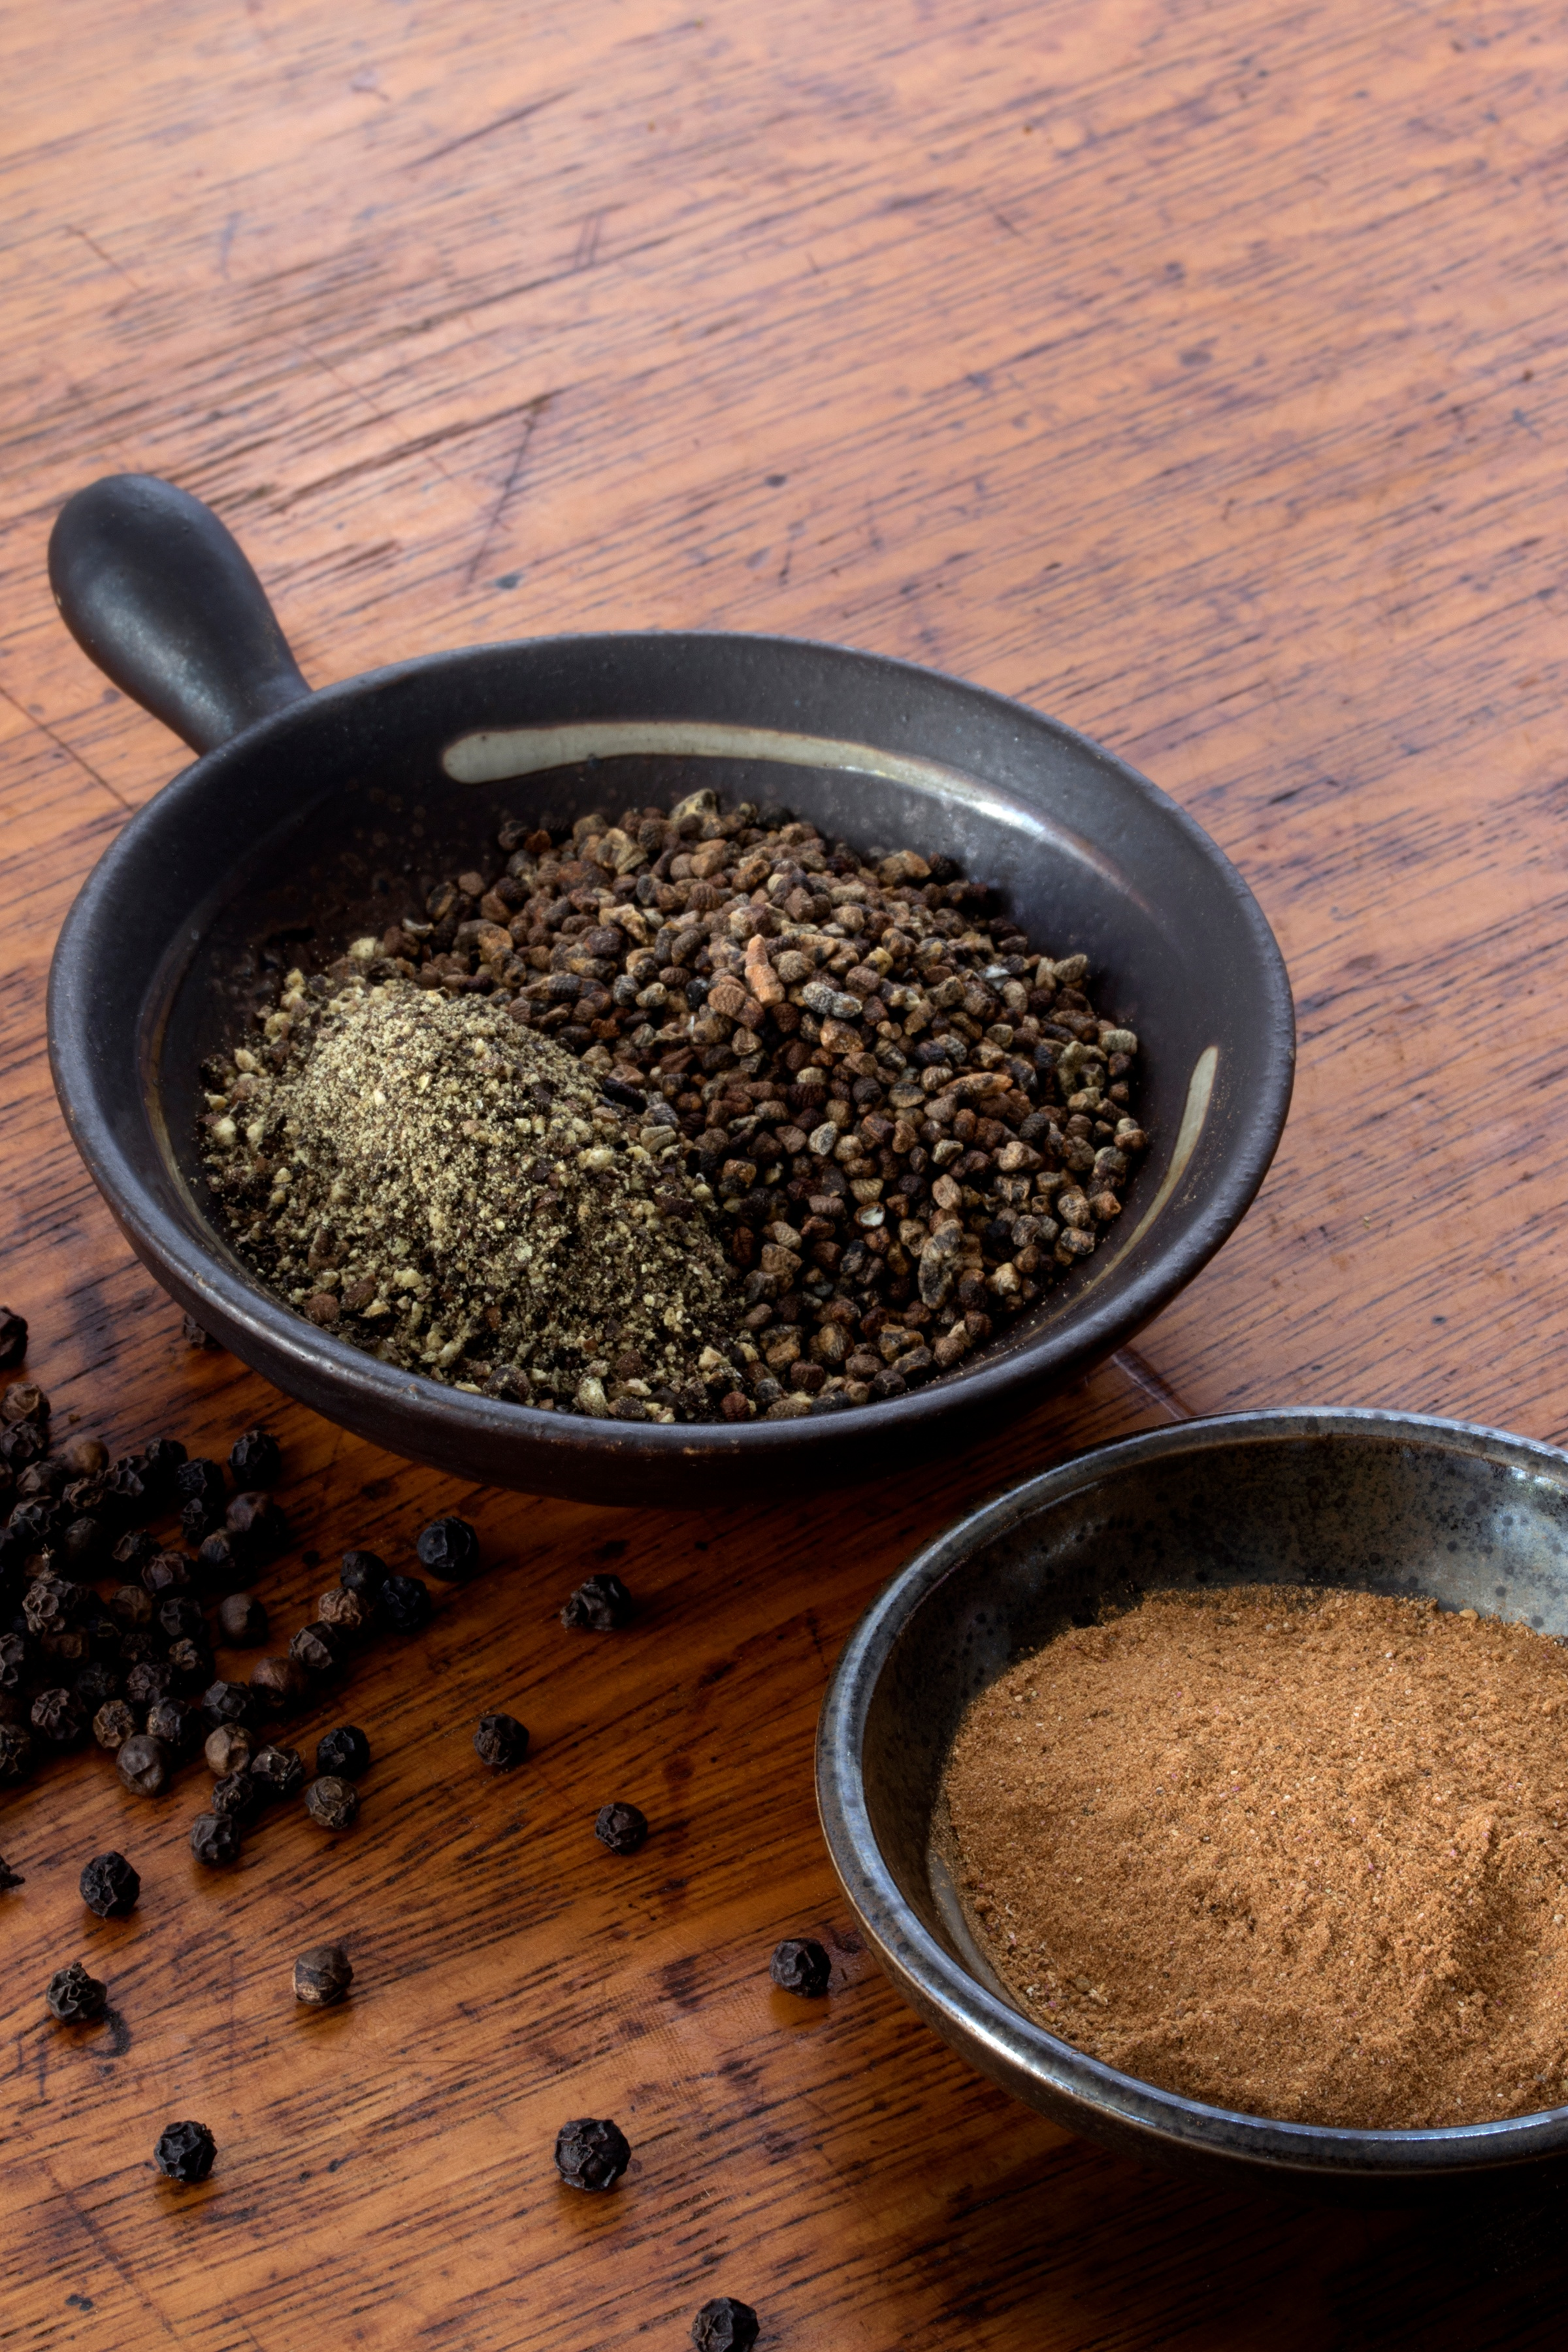 Hulled cardamom, black pepper and peppercorns, cinnamon powder and other spices in bowls on wooden table